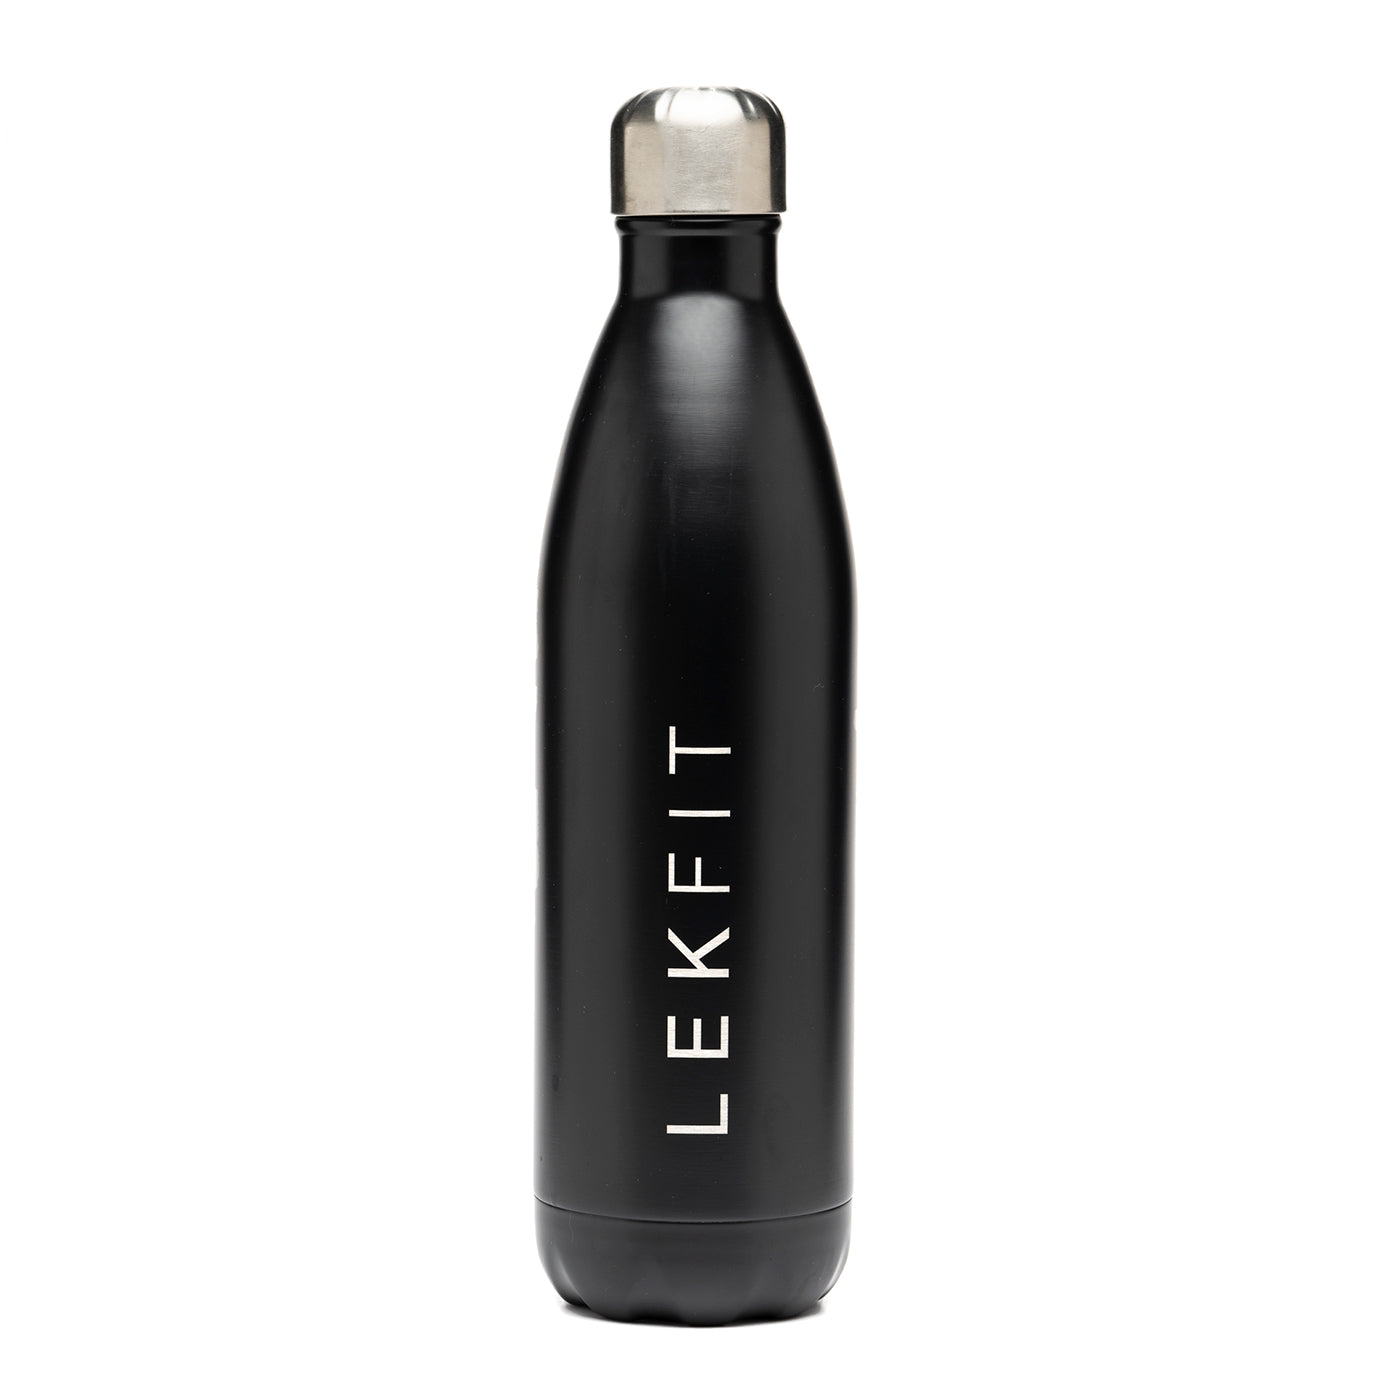 LEKFIT x S'well Resuable Bottle